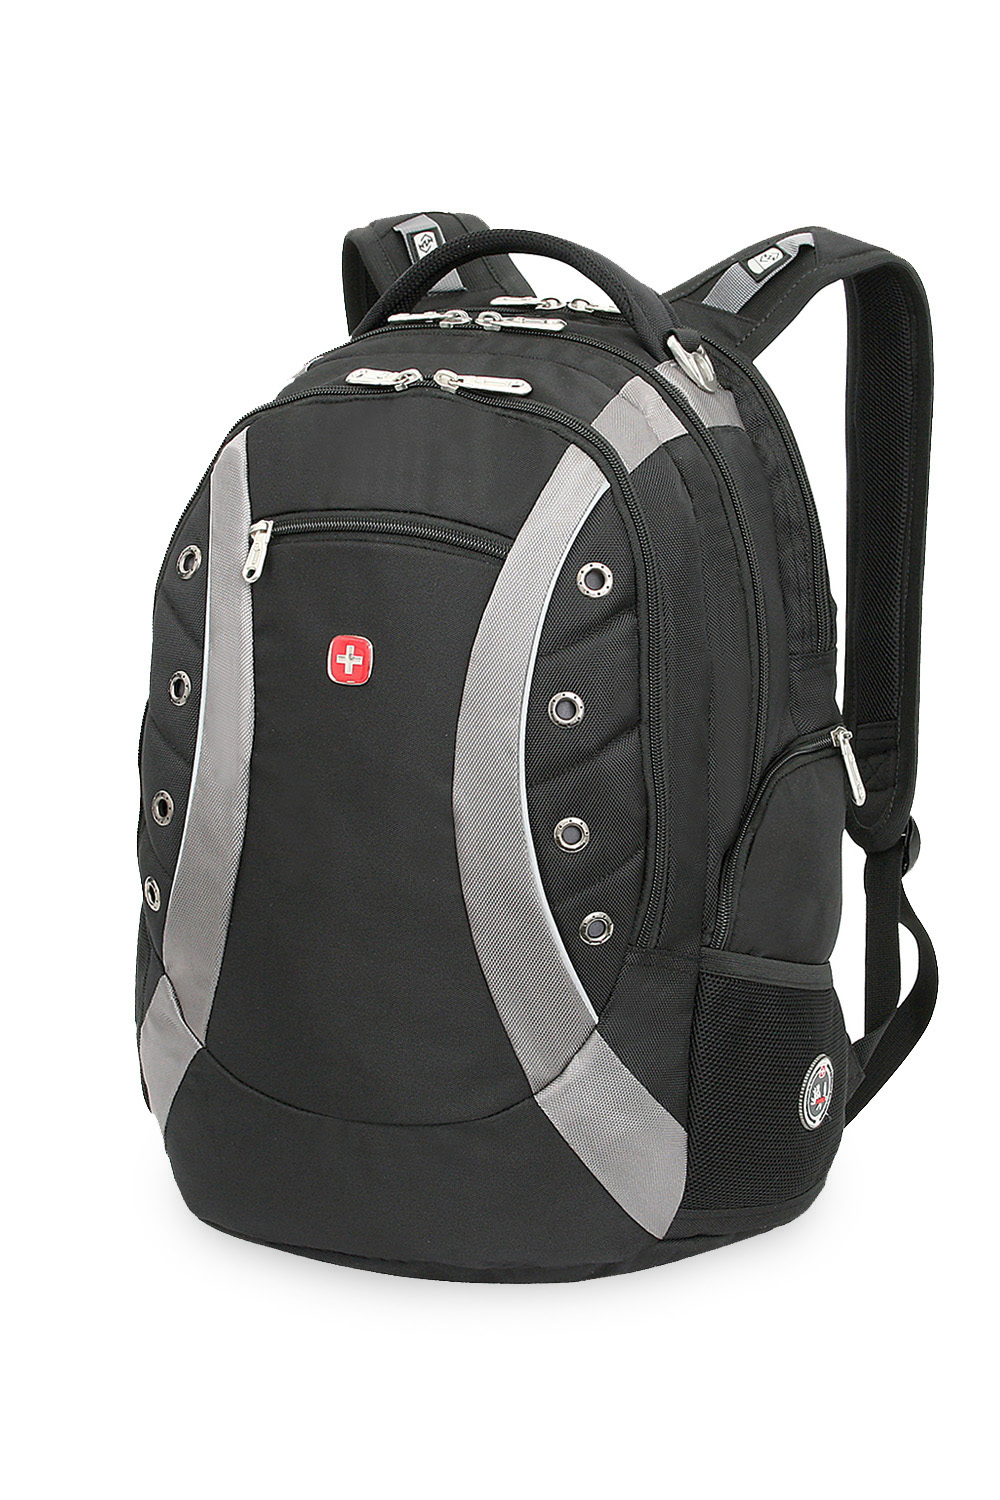 Swiss Gear Backpack India - CEAGESP